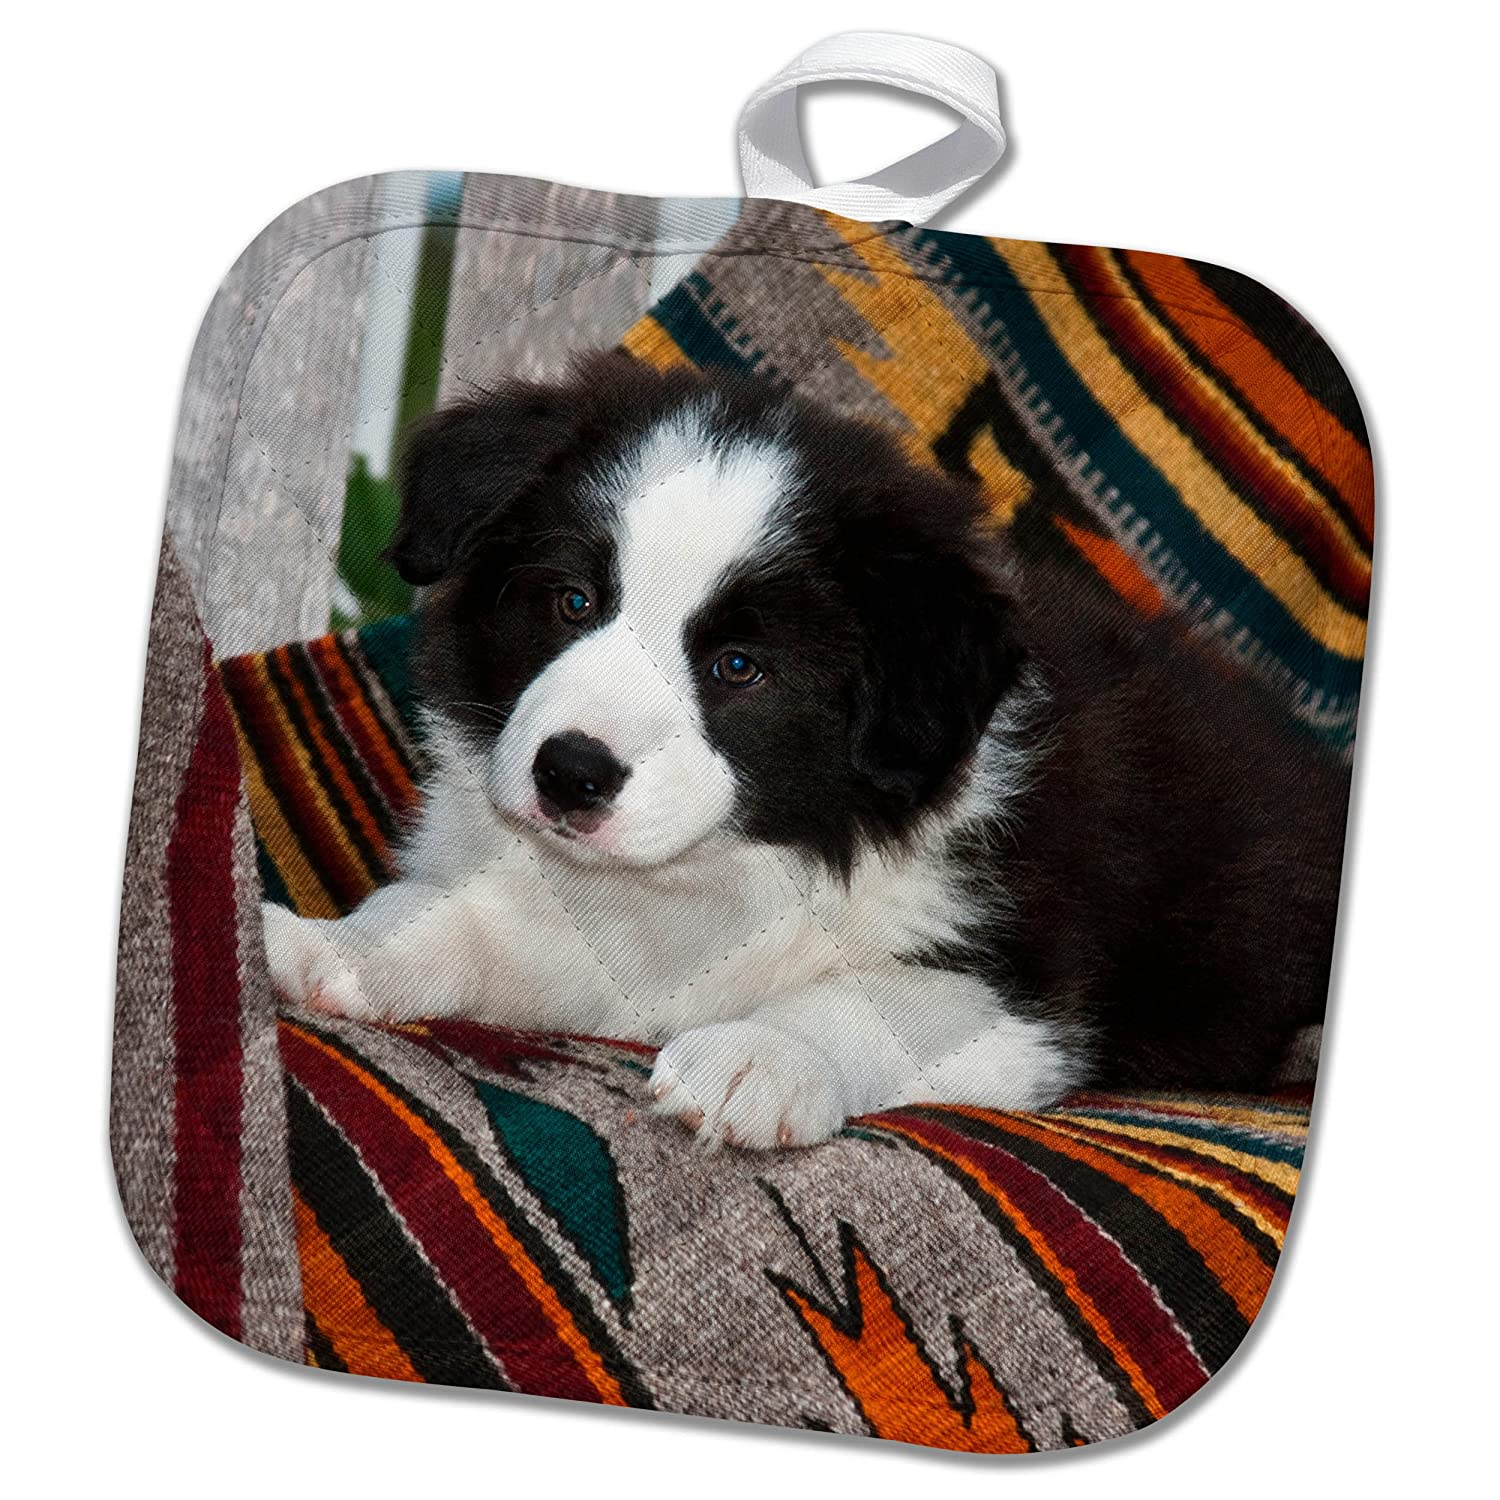 3drose Phl 258176 1 Pot Holder Border Collie Puppy Lying On Blankets 8 By 8